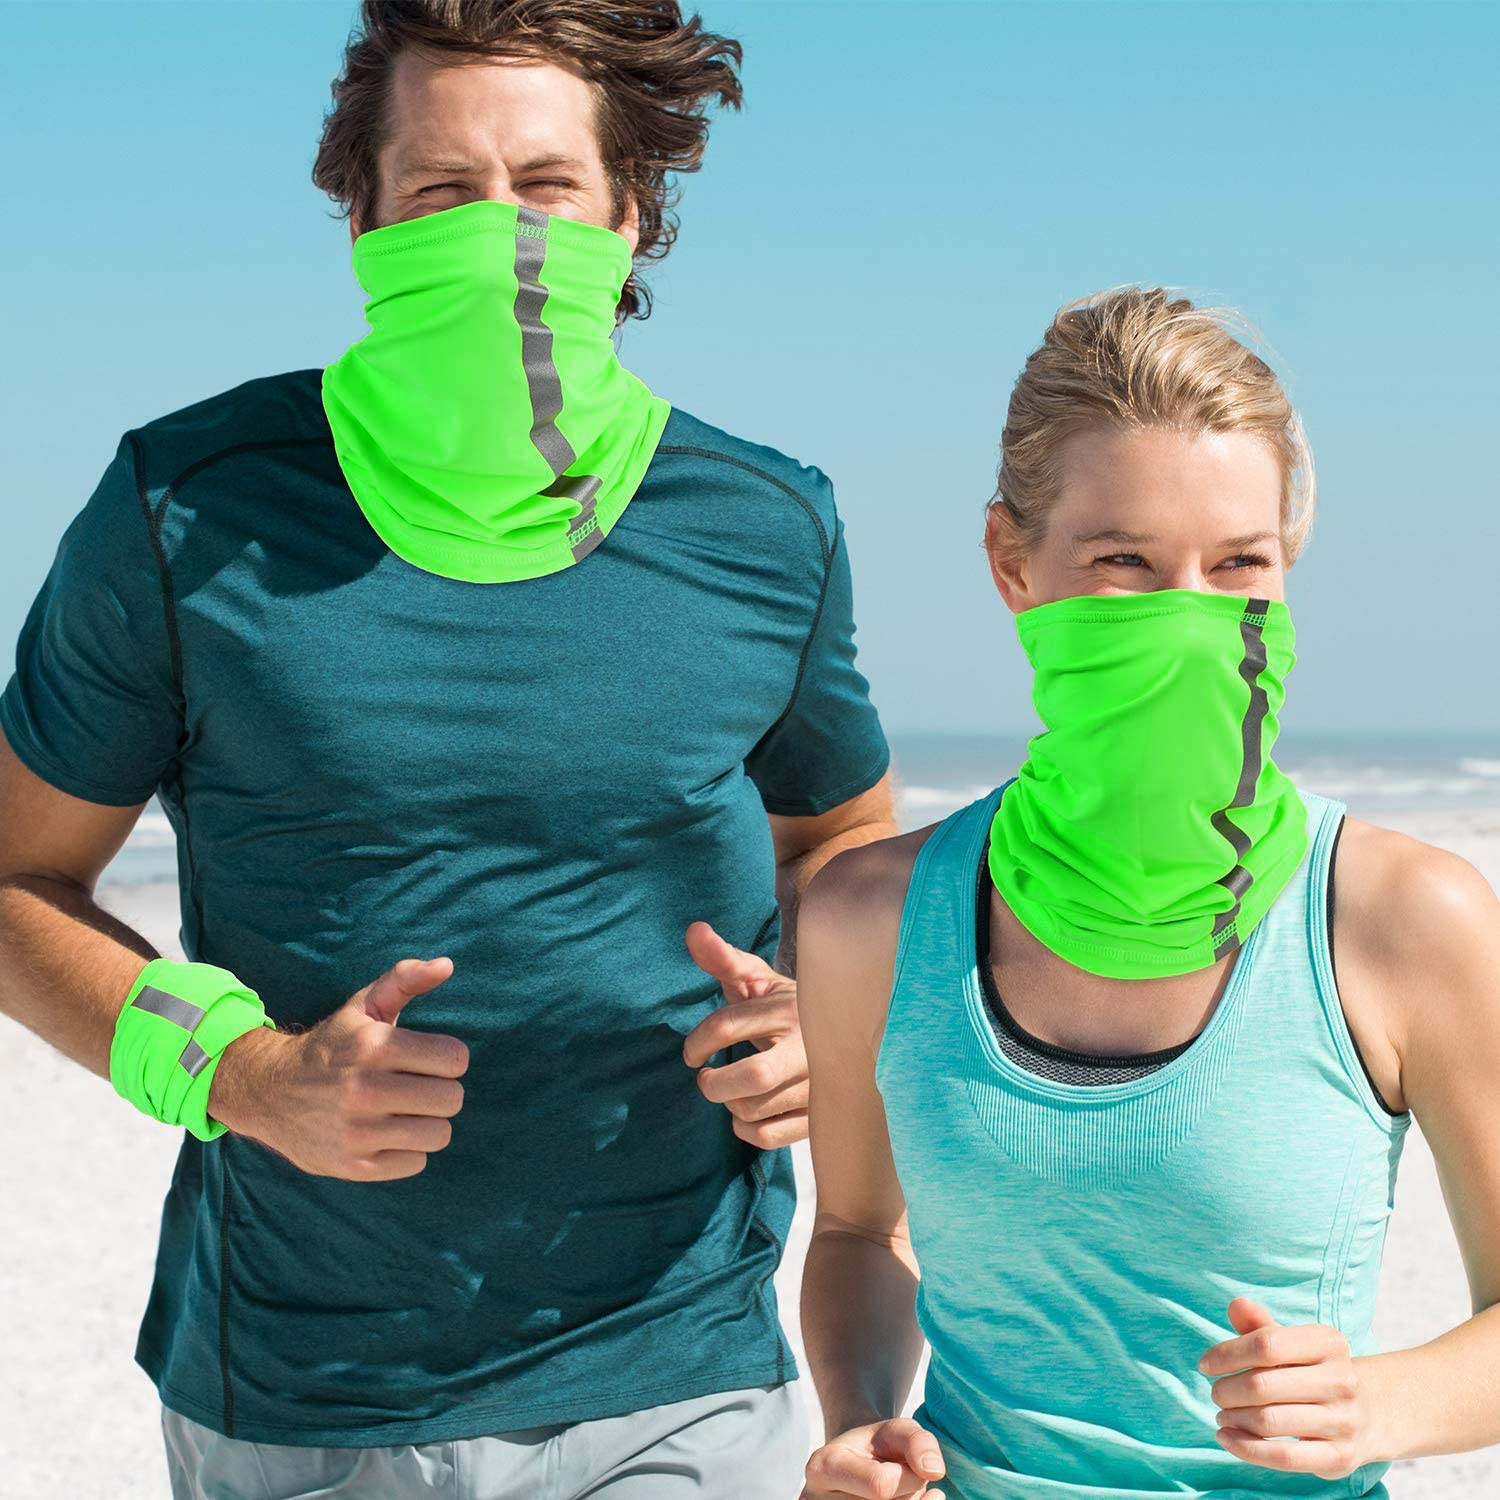 DiaryLook Summer Florescent Reflective Stripe Safety Face Cover Neck Gaiter Multifunctional Headwear Bandana Face Scarf,C ool Breathable Summer Neck Tube Scarf UV Protection